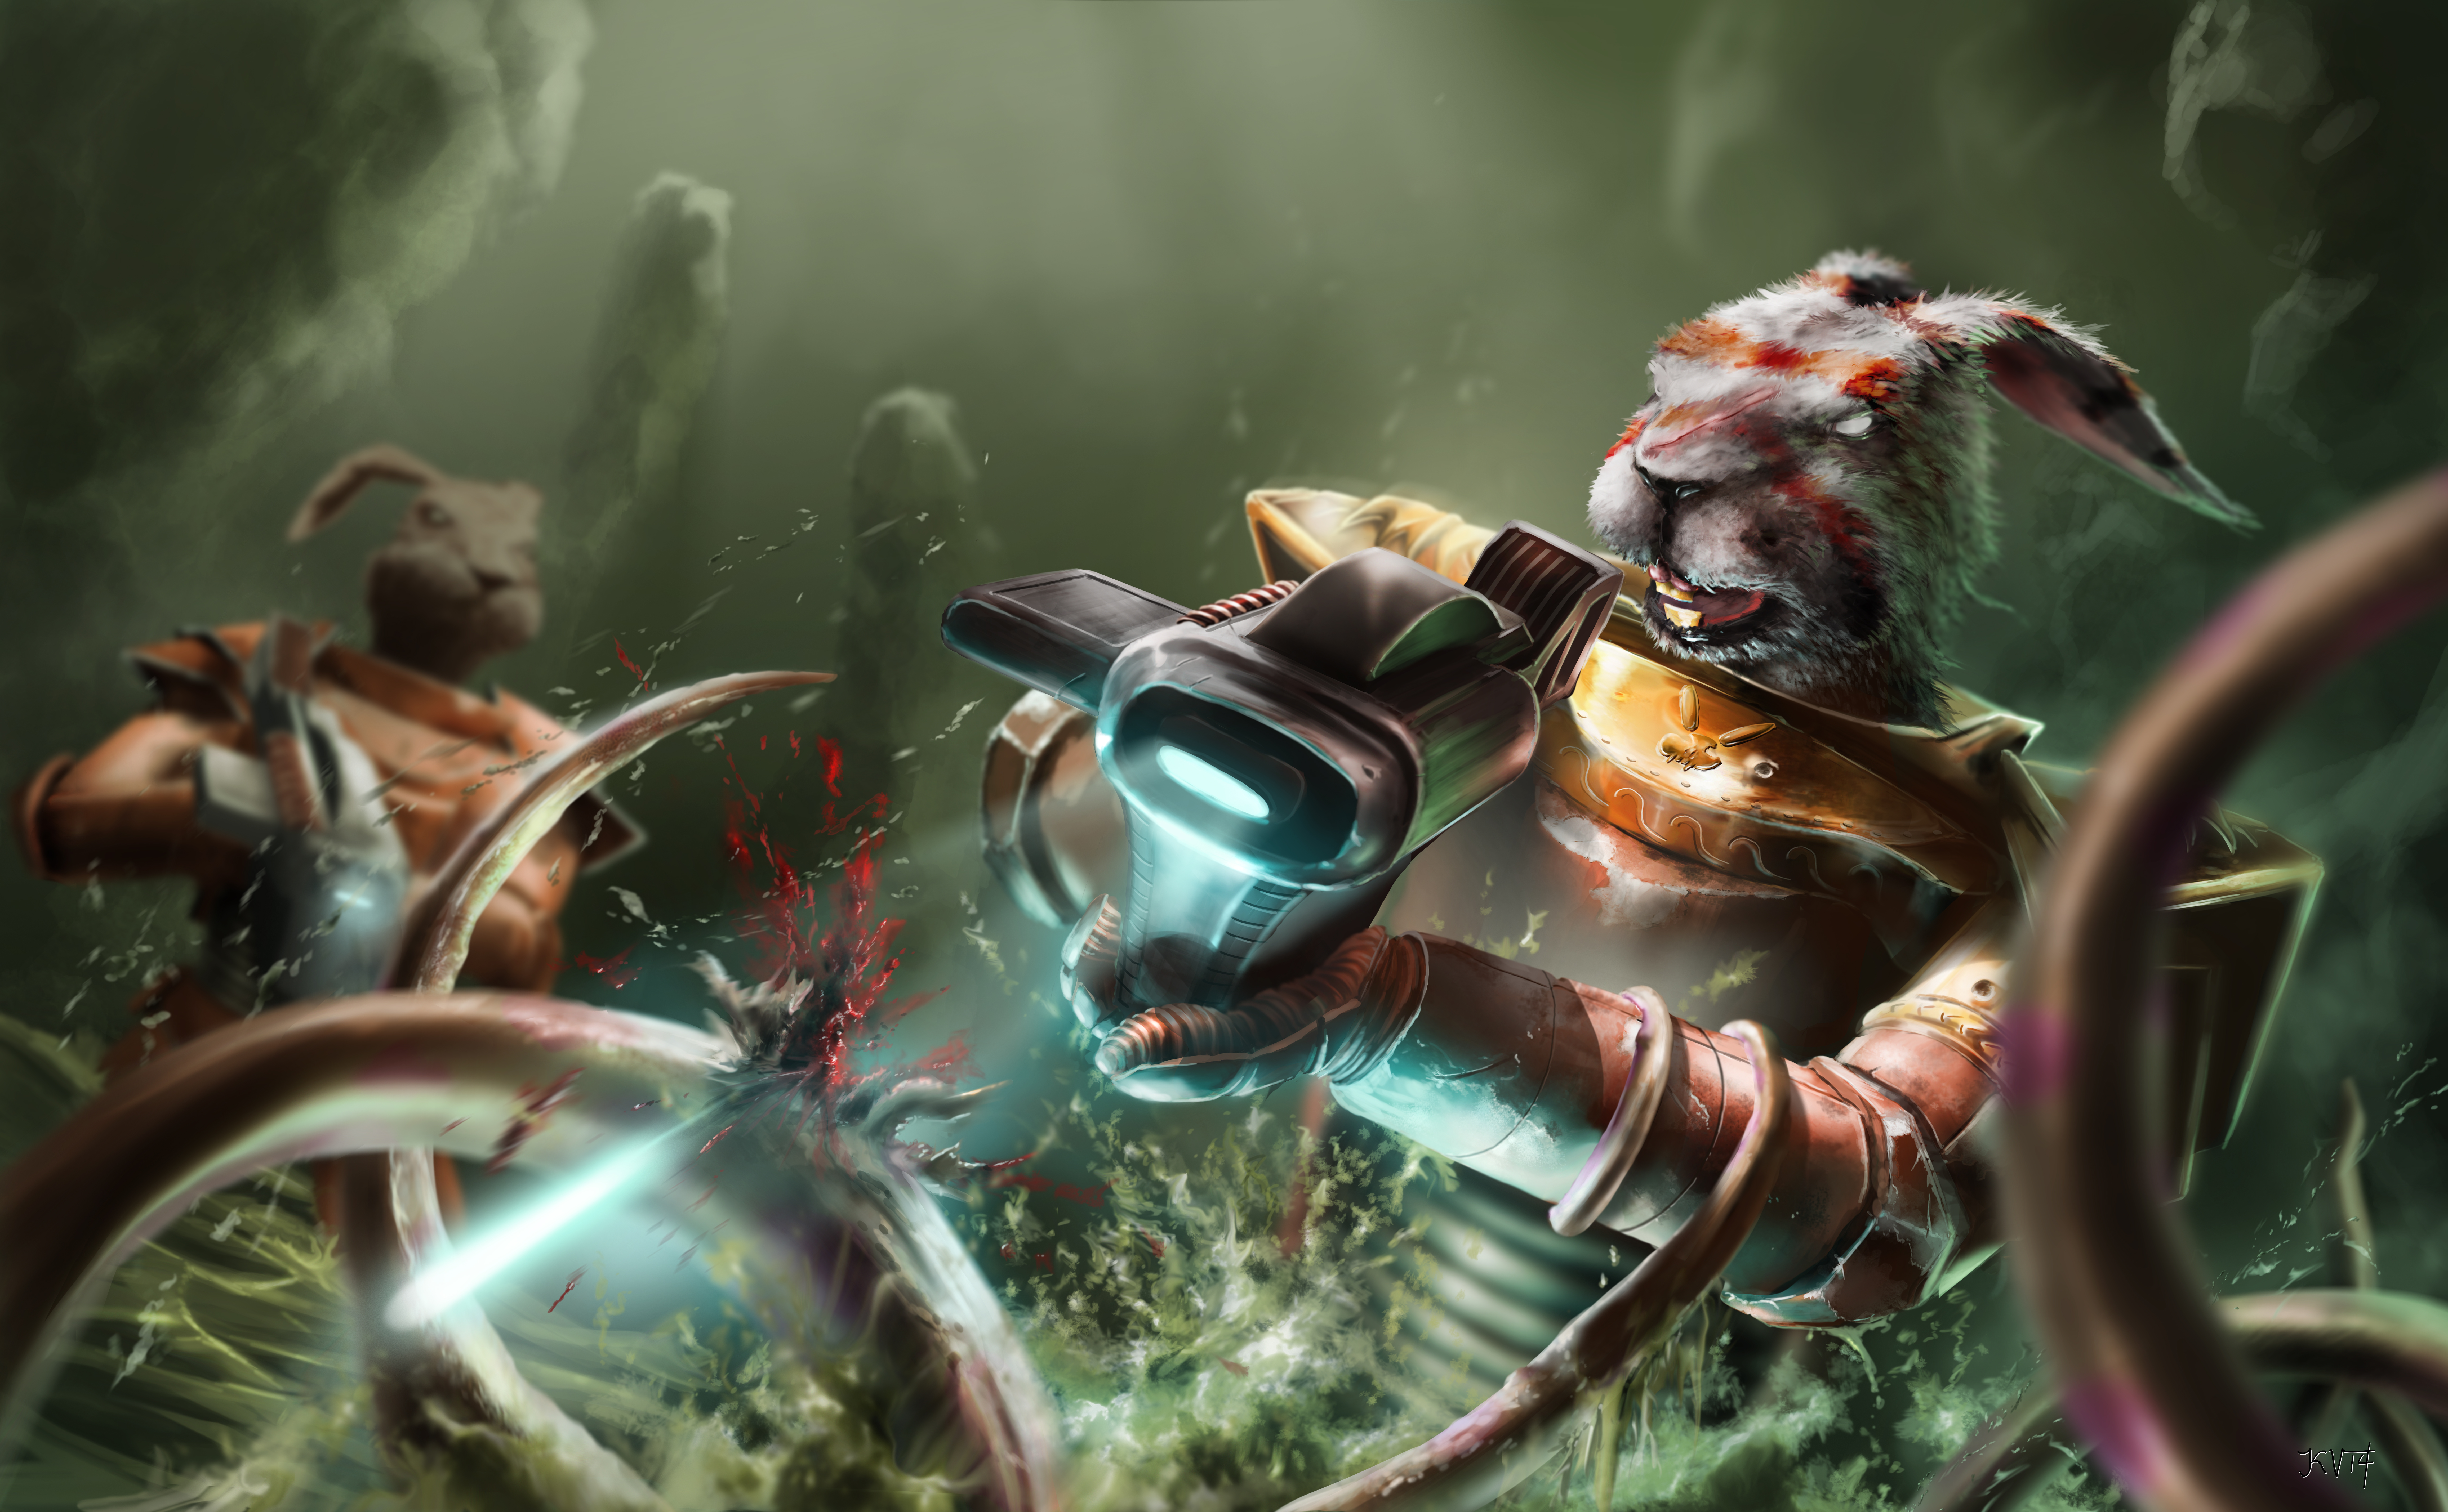 [Humour 40K] Collection d'images humoristiques - Page 2 Astro_hare_commander__6__by_kingstantin-d835qy2